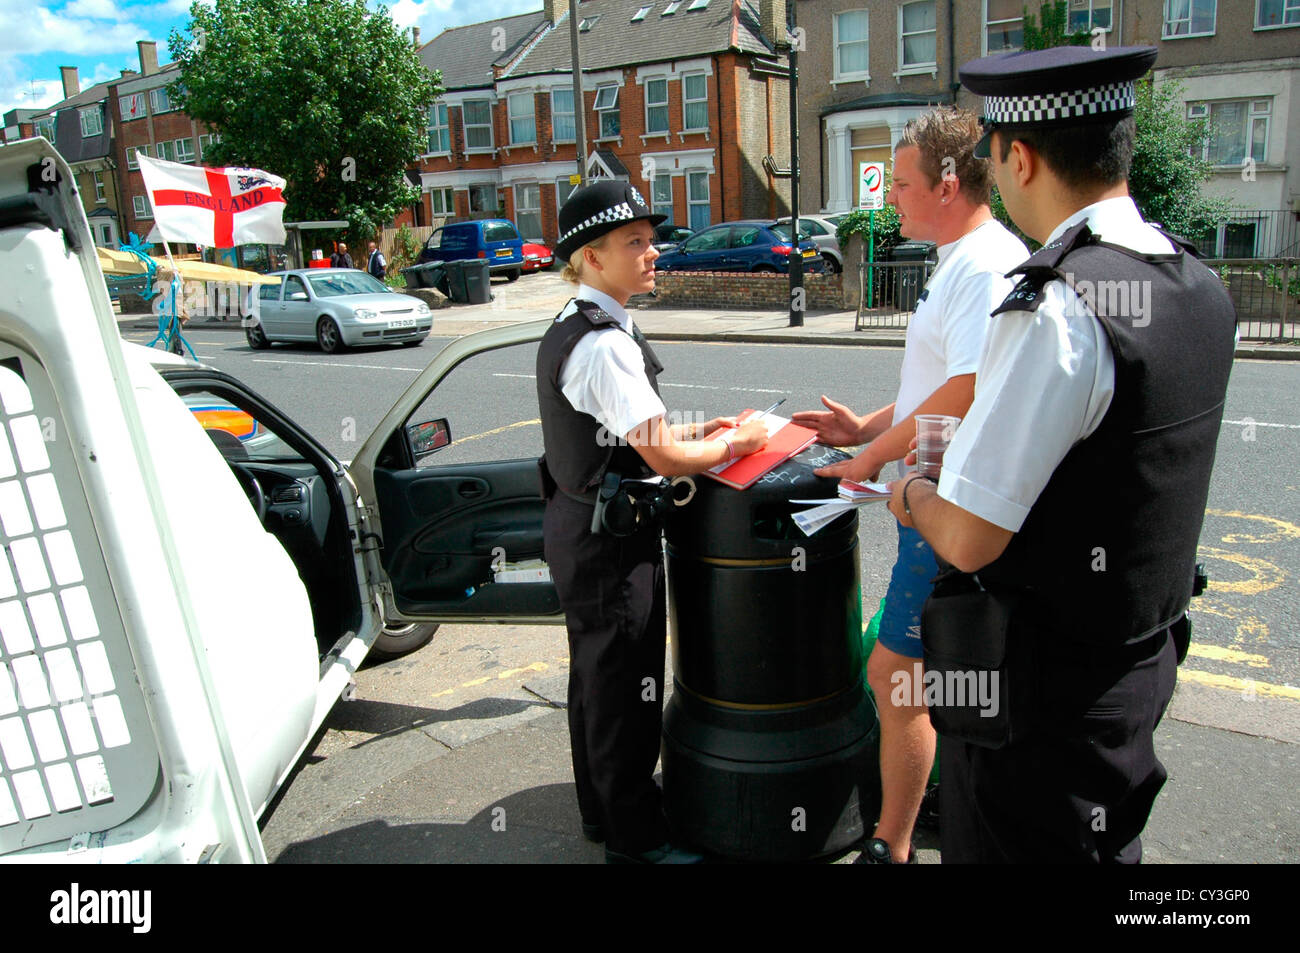 A policewoman writes down the details of a motorist after the stop and search of a van in Bounds Green, north London. - Stock Image